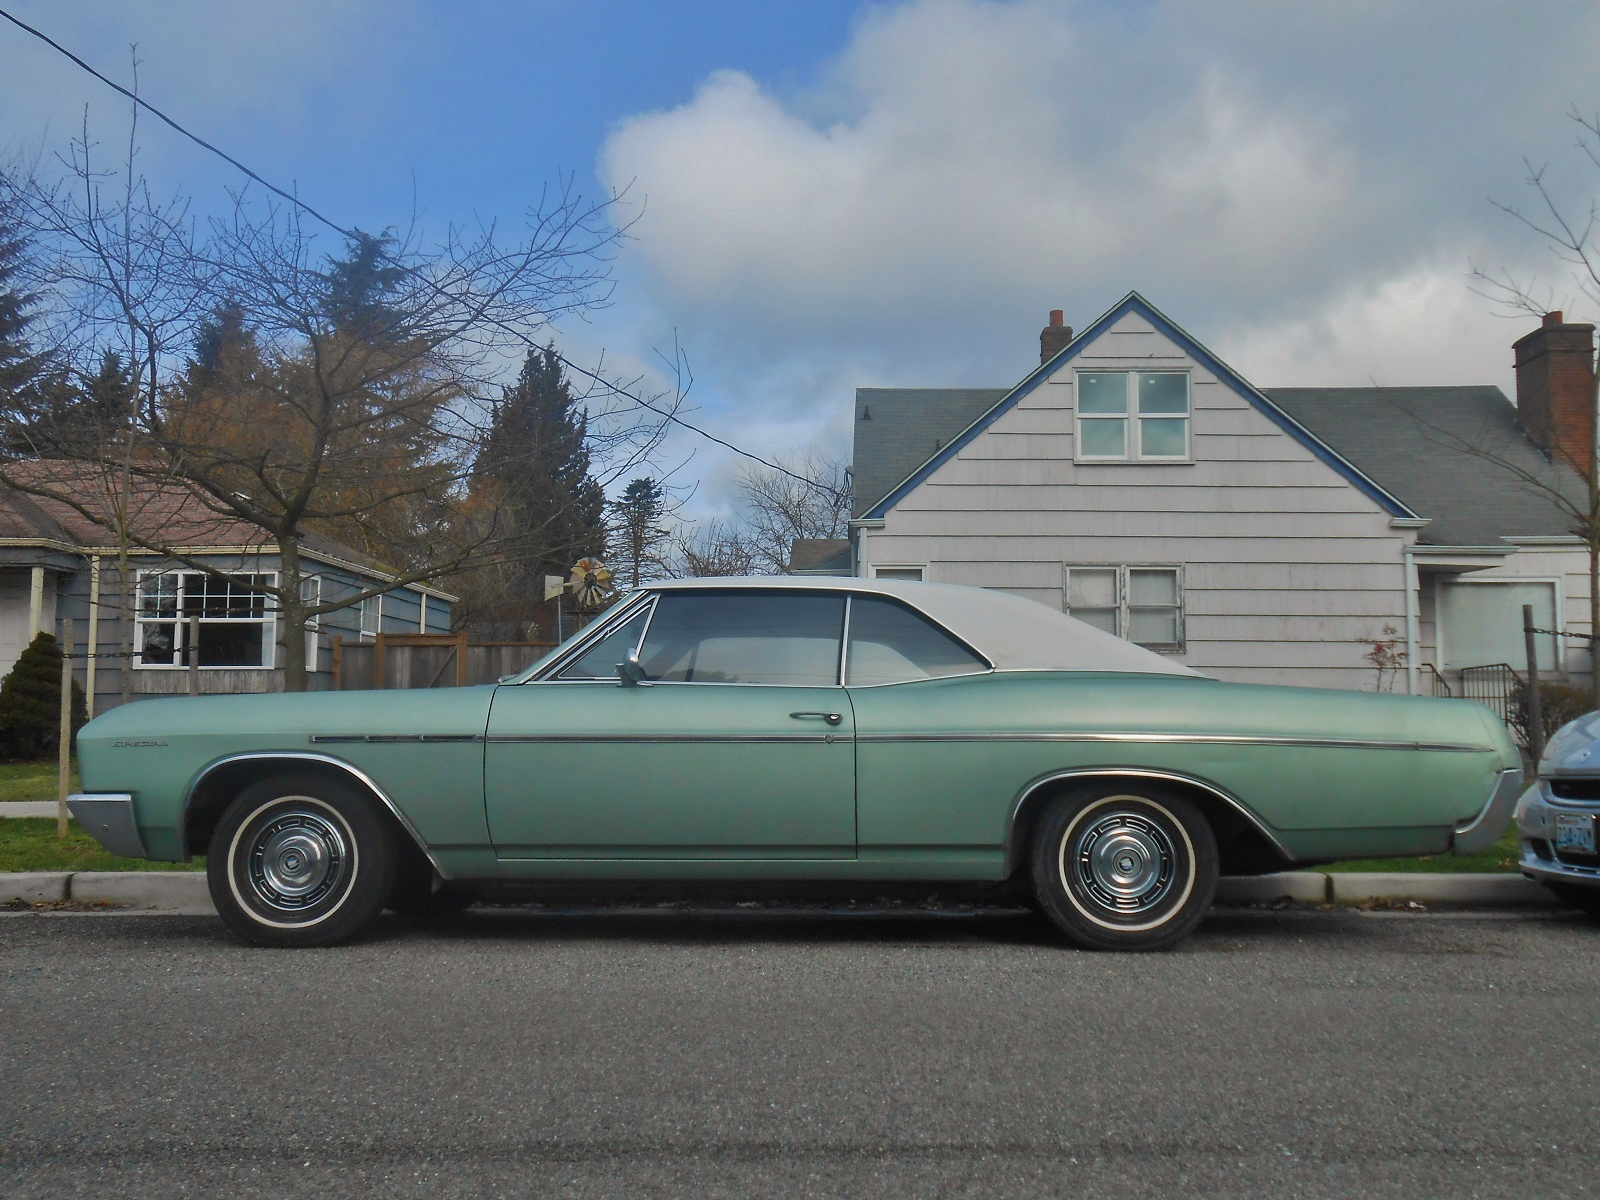 1967 Chevrolet Station Wagonfile1966 Bel Air V8 Wagon 1966 Seattle S Parked Cars Buick Special Deluxe